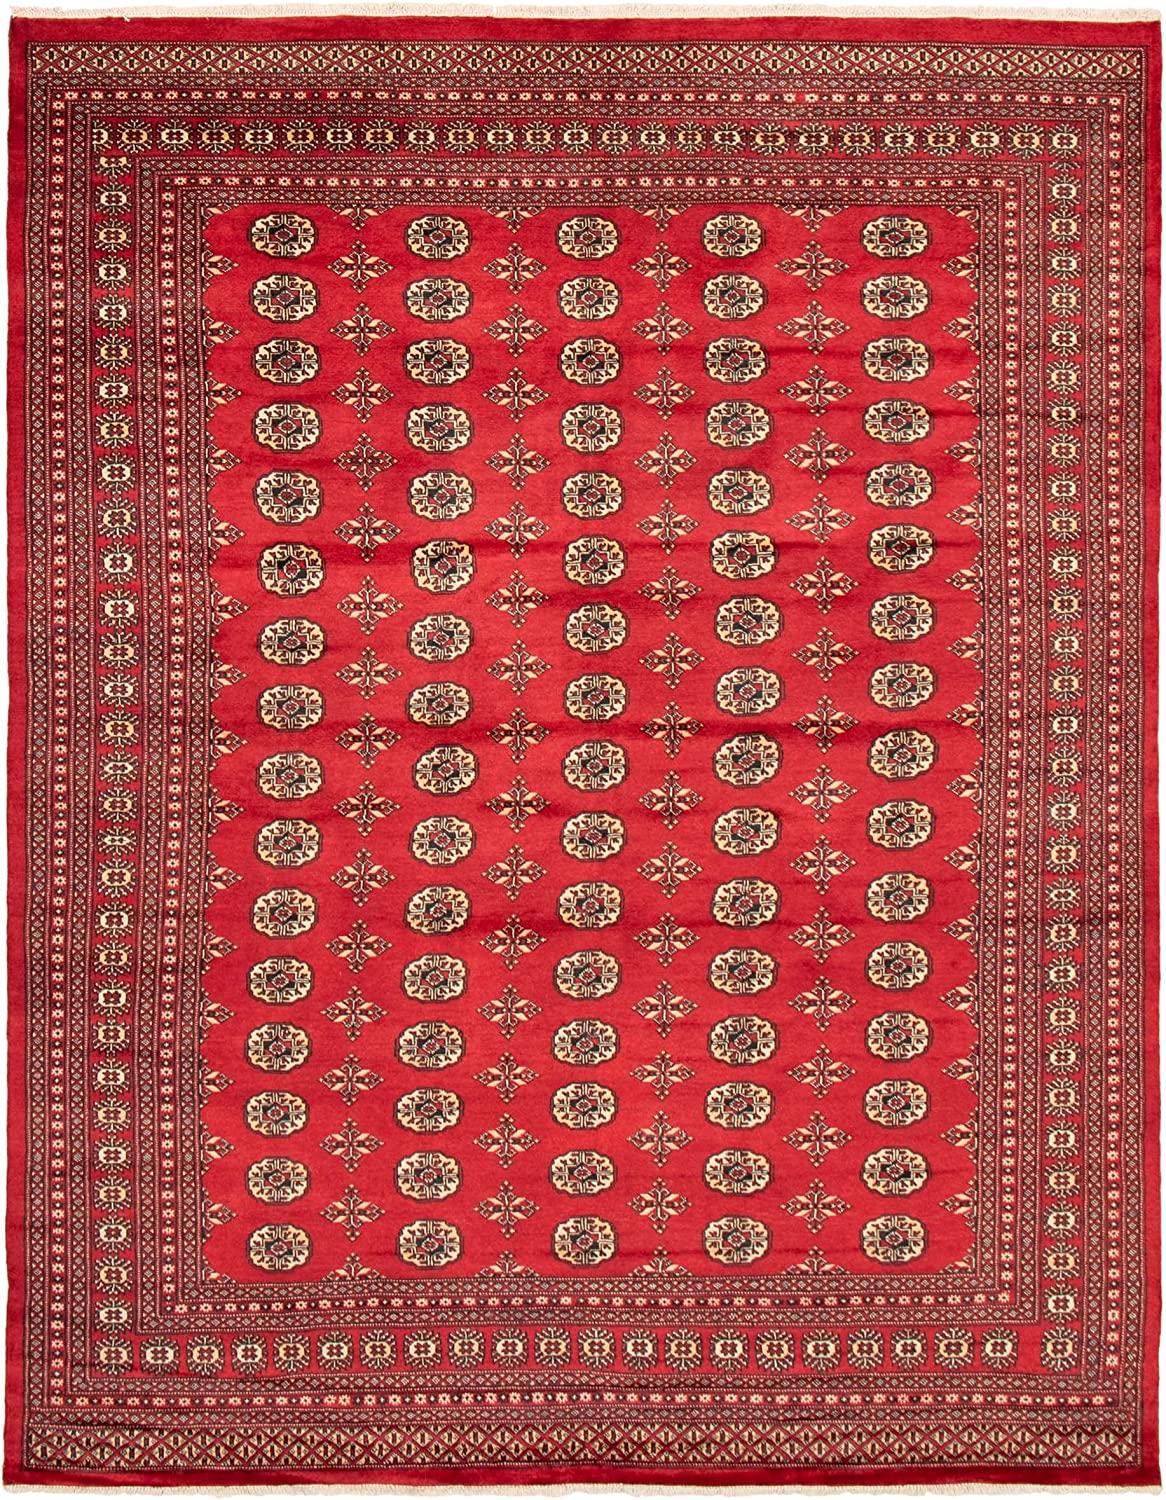 eCarpet Gallery Large Area Be super welcome Rug Hand-K Bedroom Living Room for famous